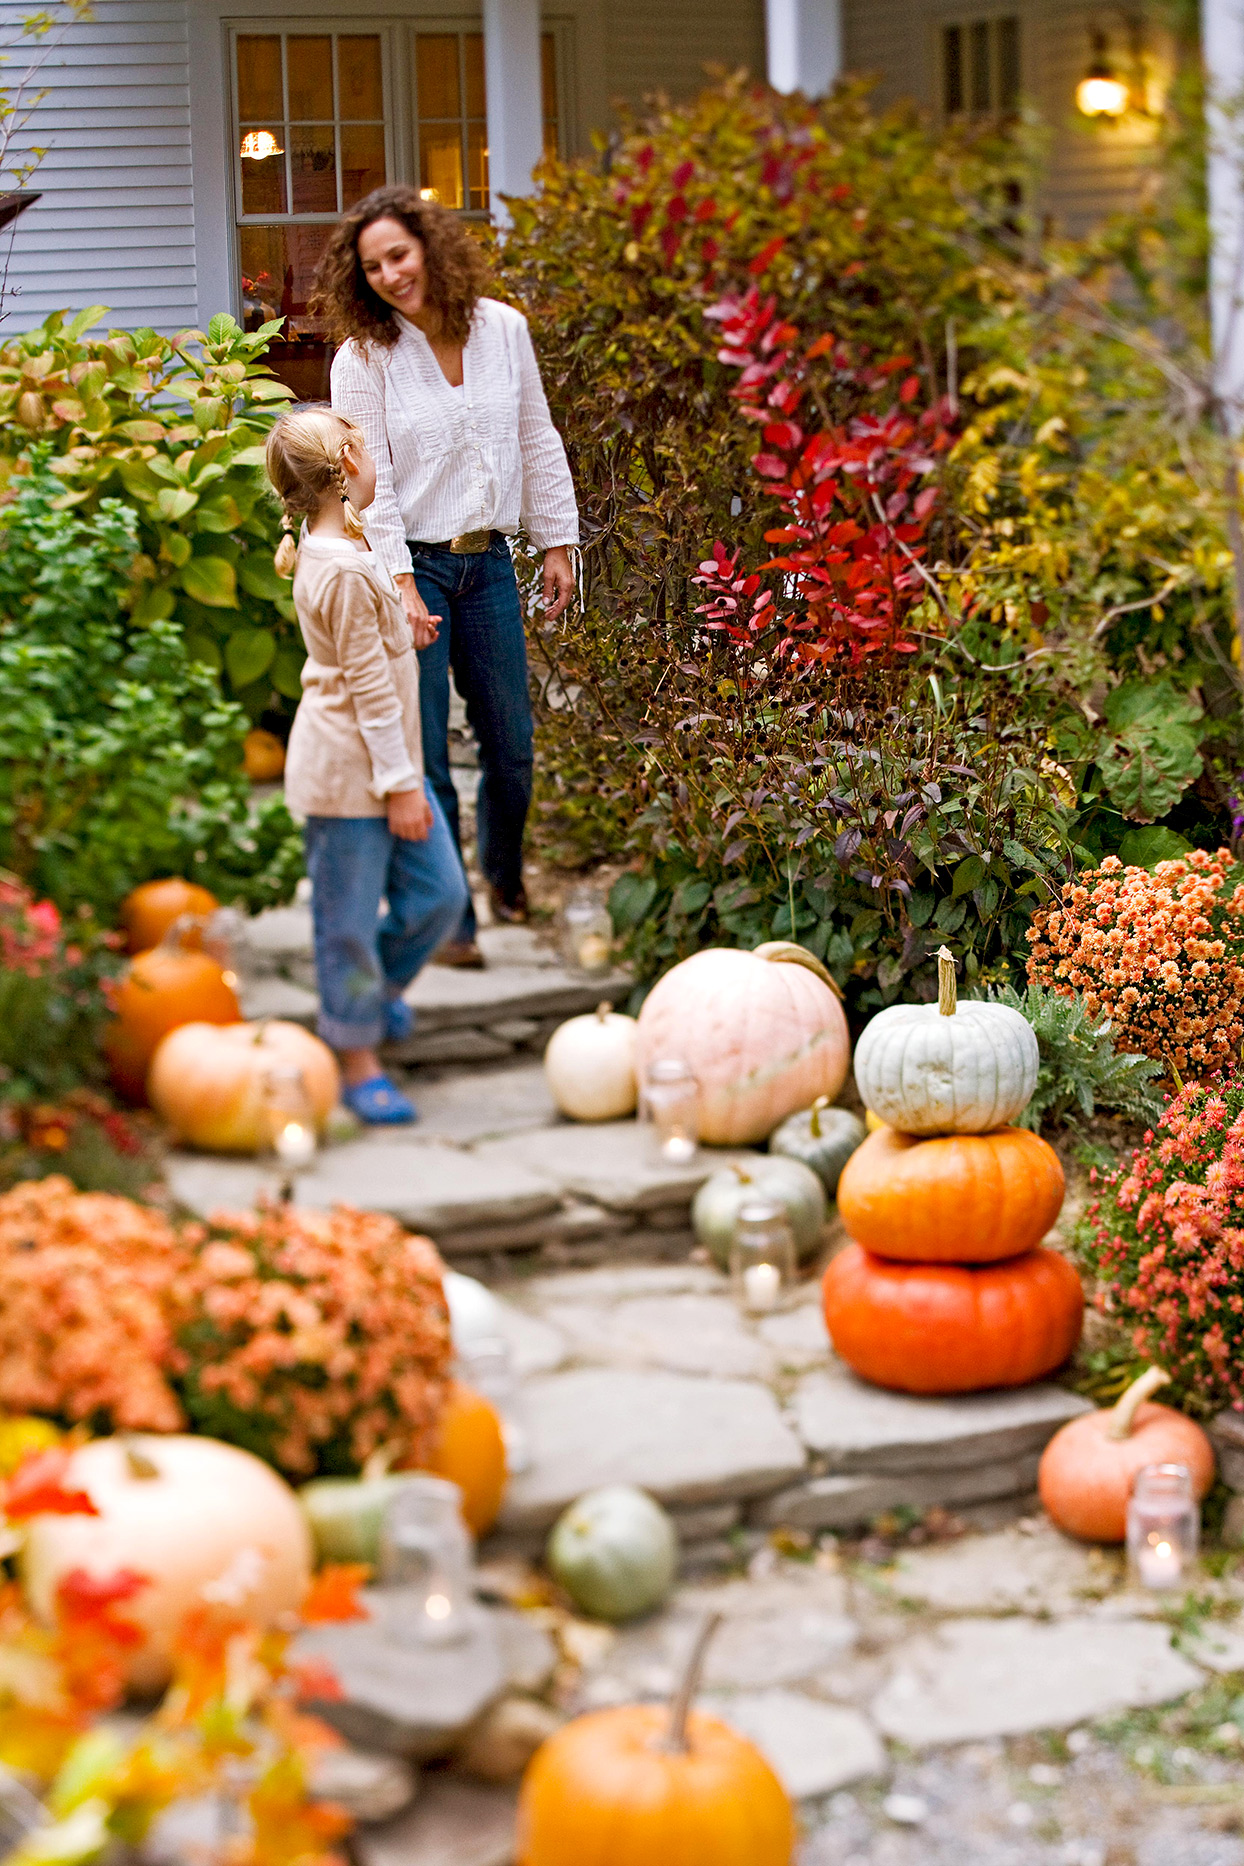 adult and child walking down path with pumpkins